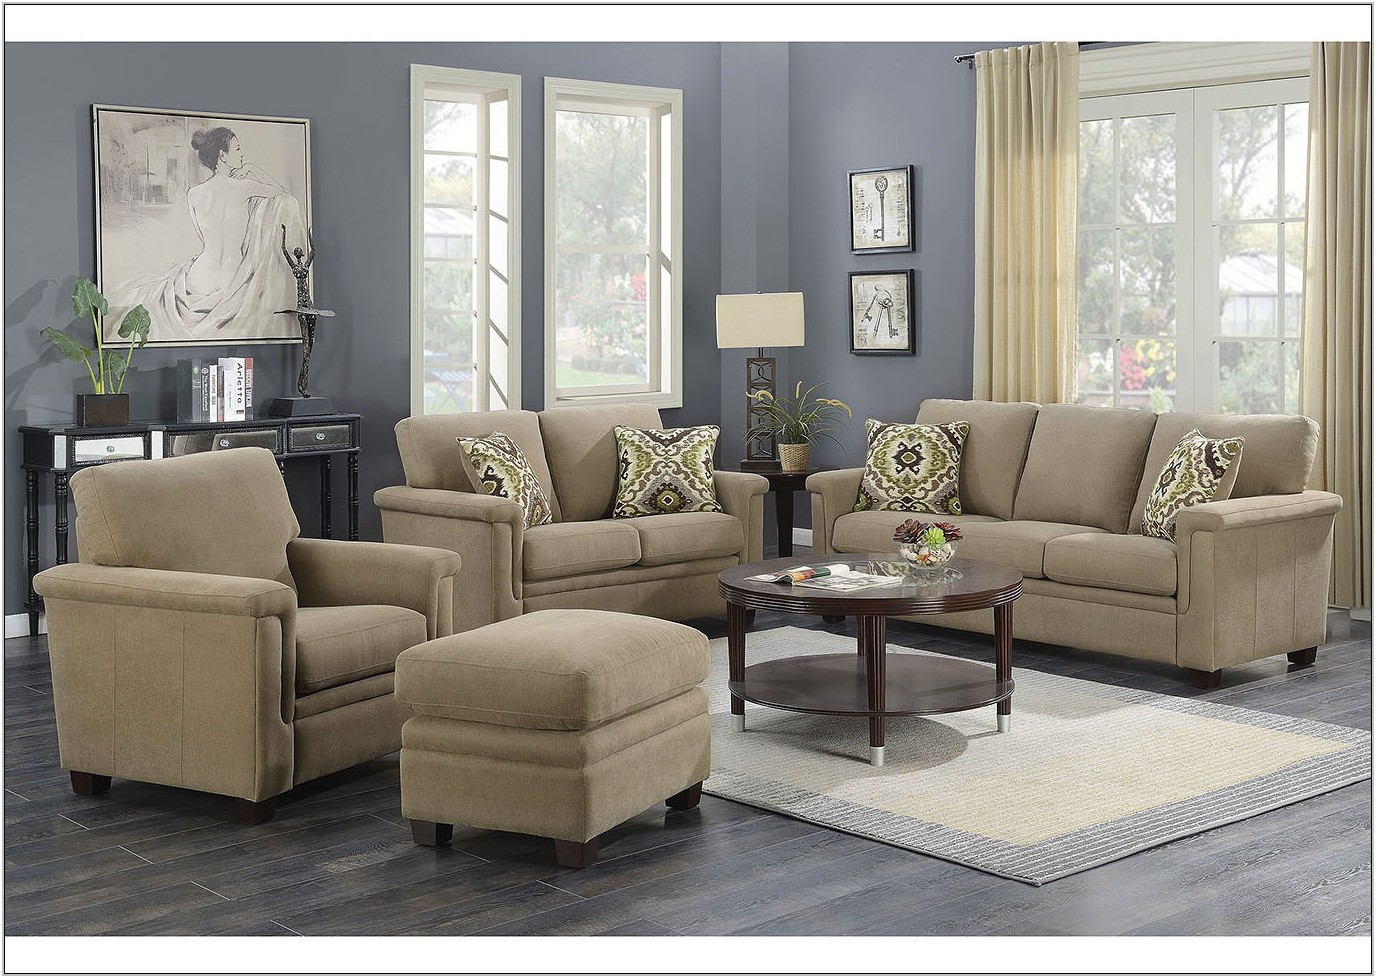 4 Piece Living Room Furniture